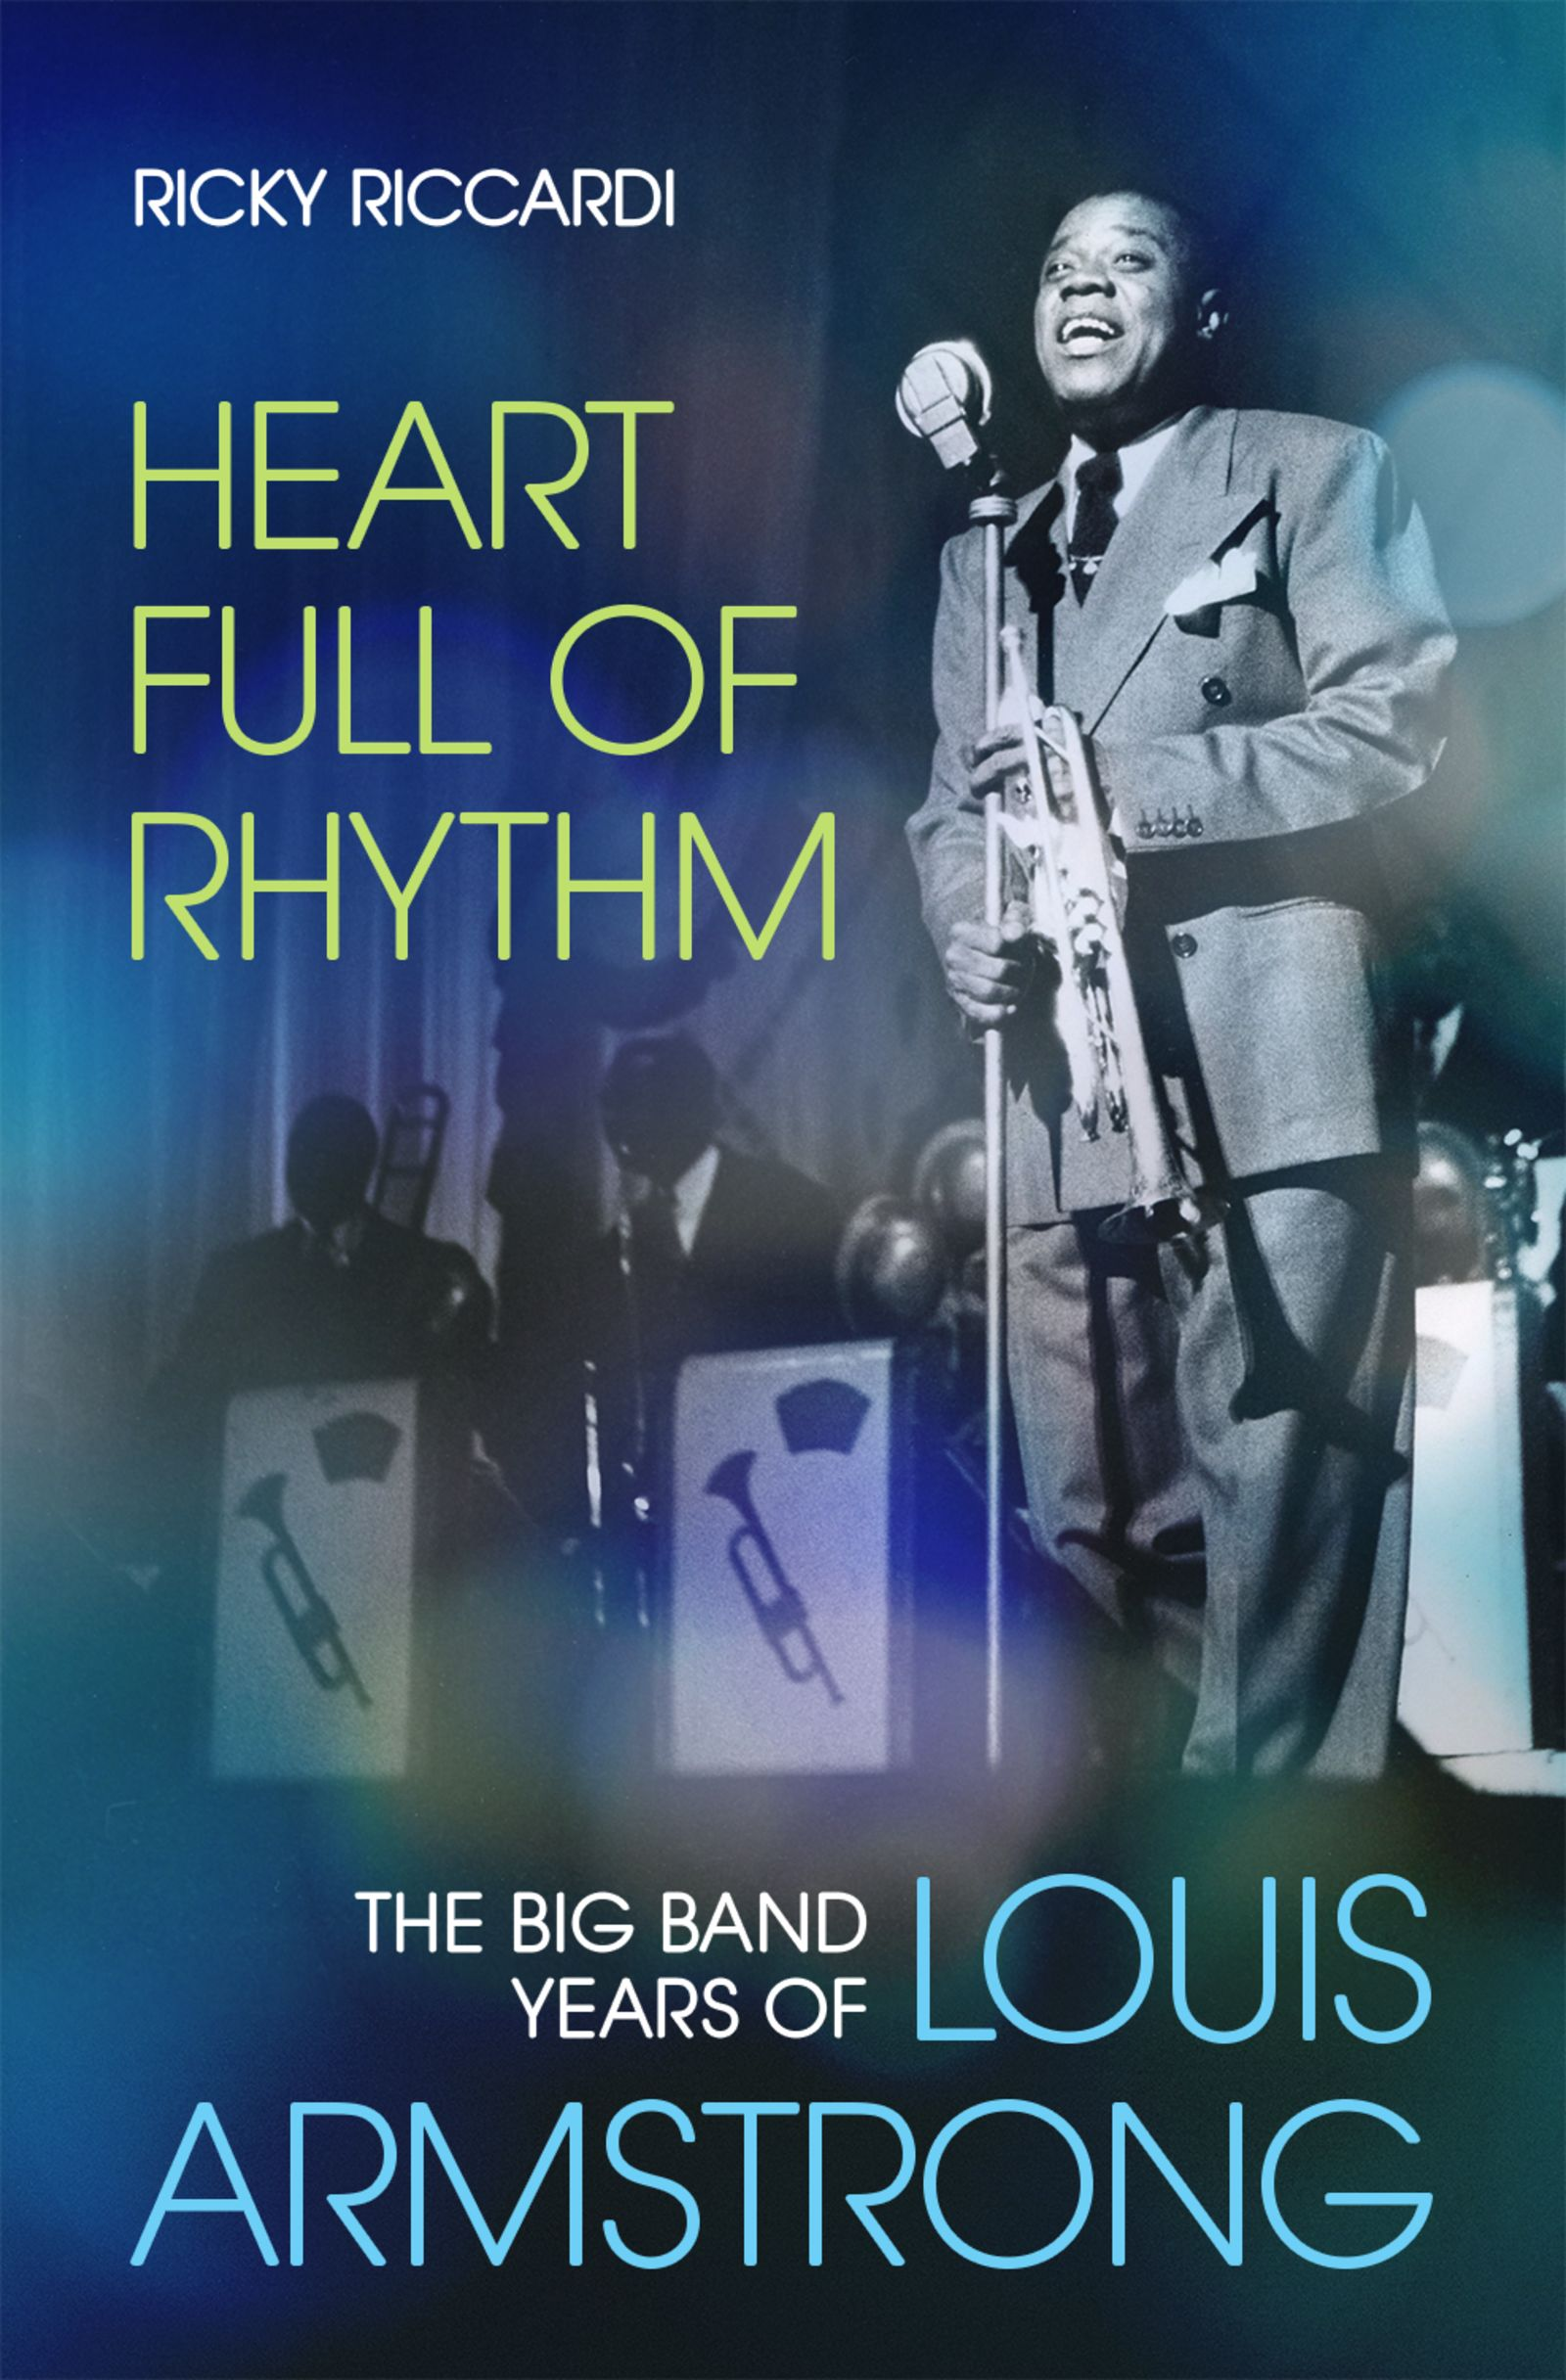 Heart Full of Rhythm The Big Band Years of Louis Armstrong